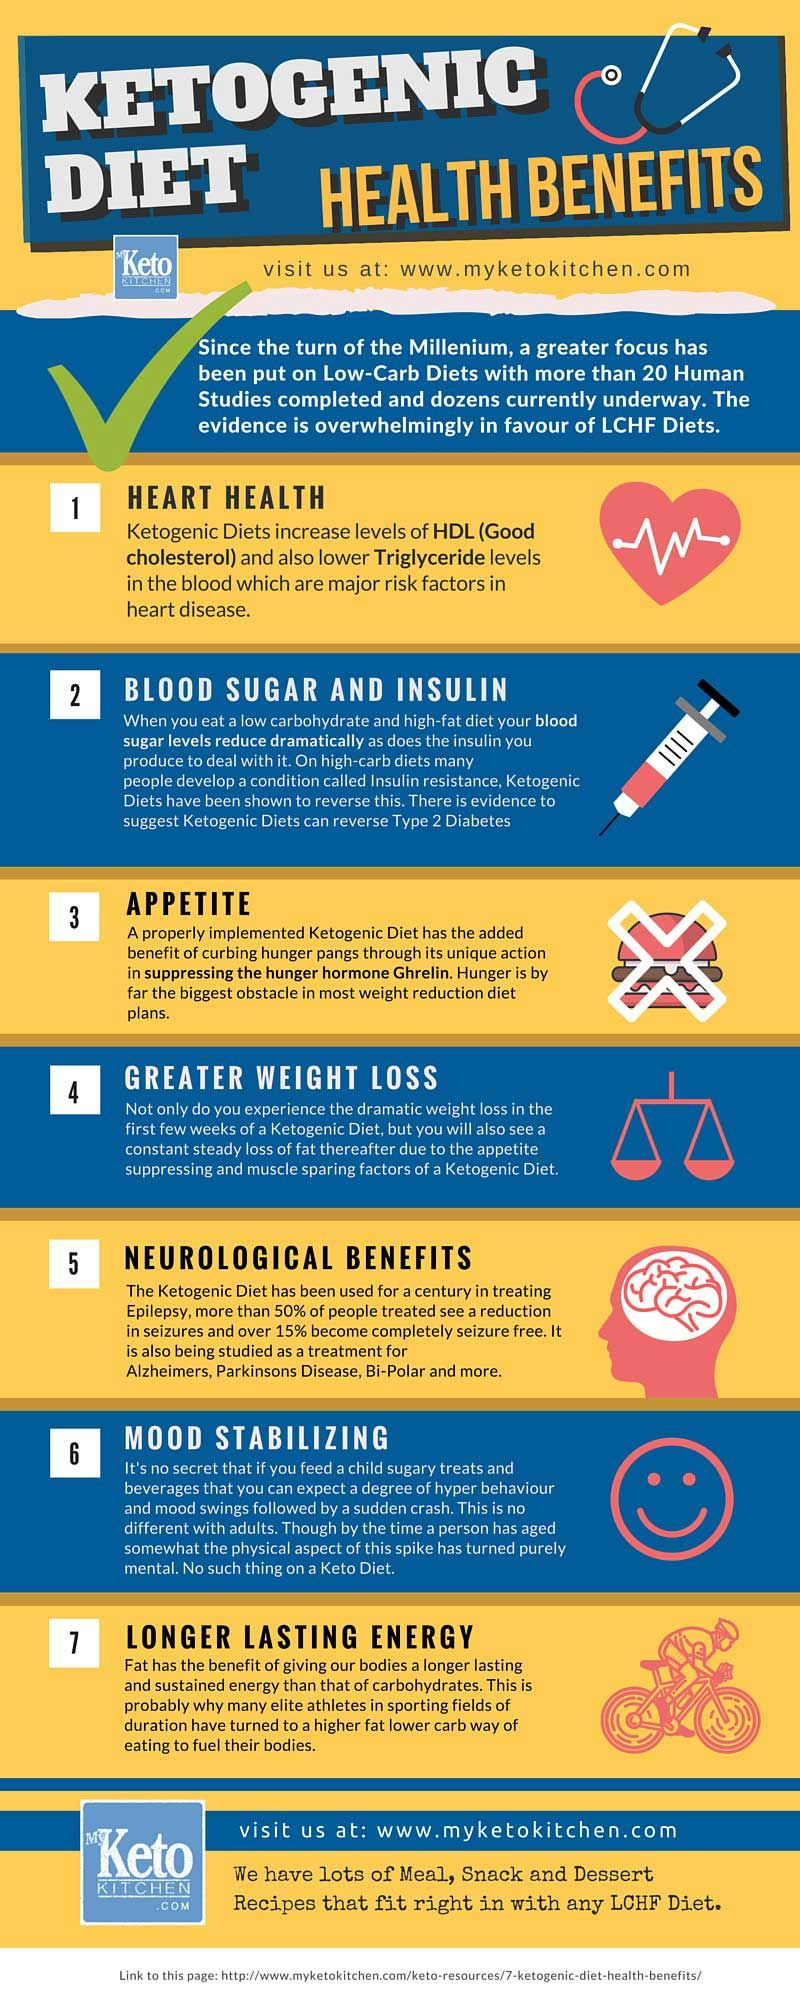 How long does it take to get into ketosis carbohydrate